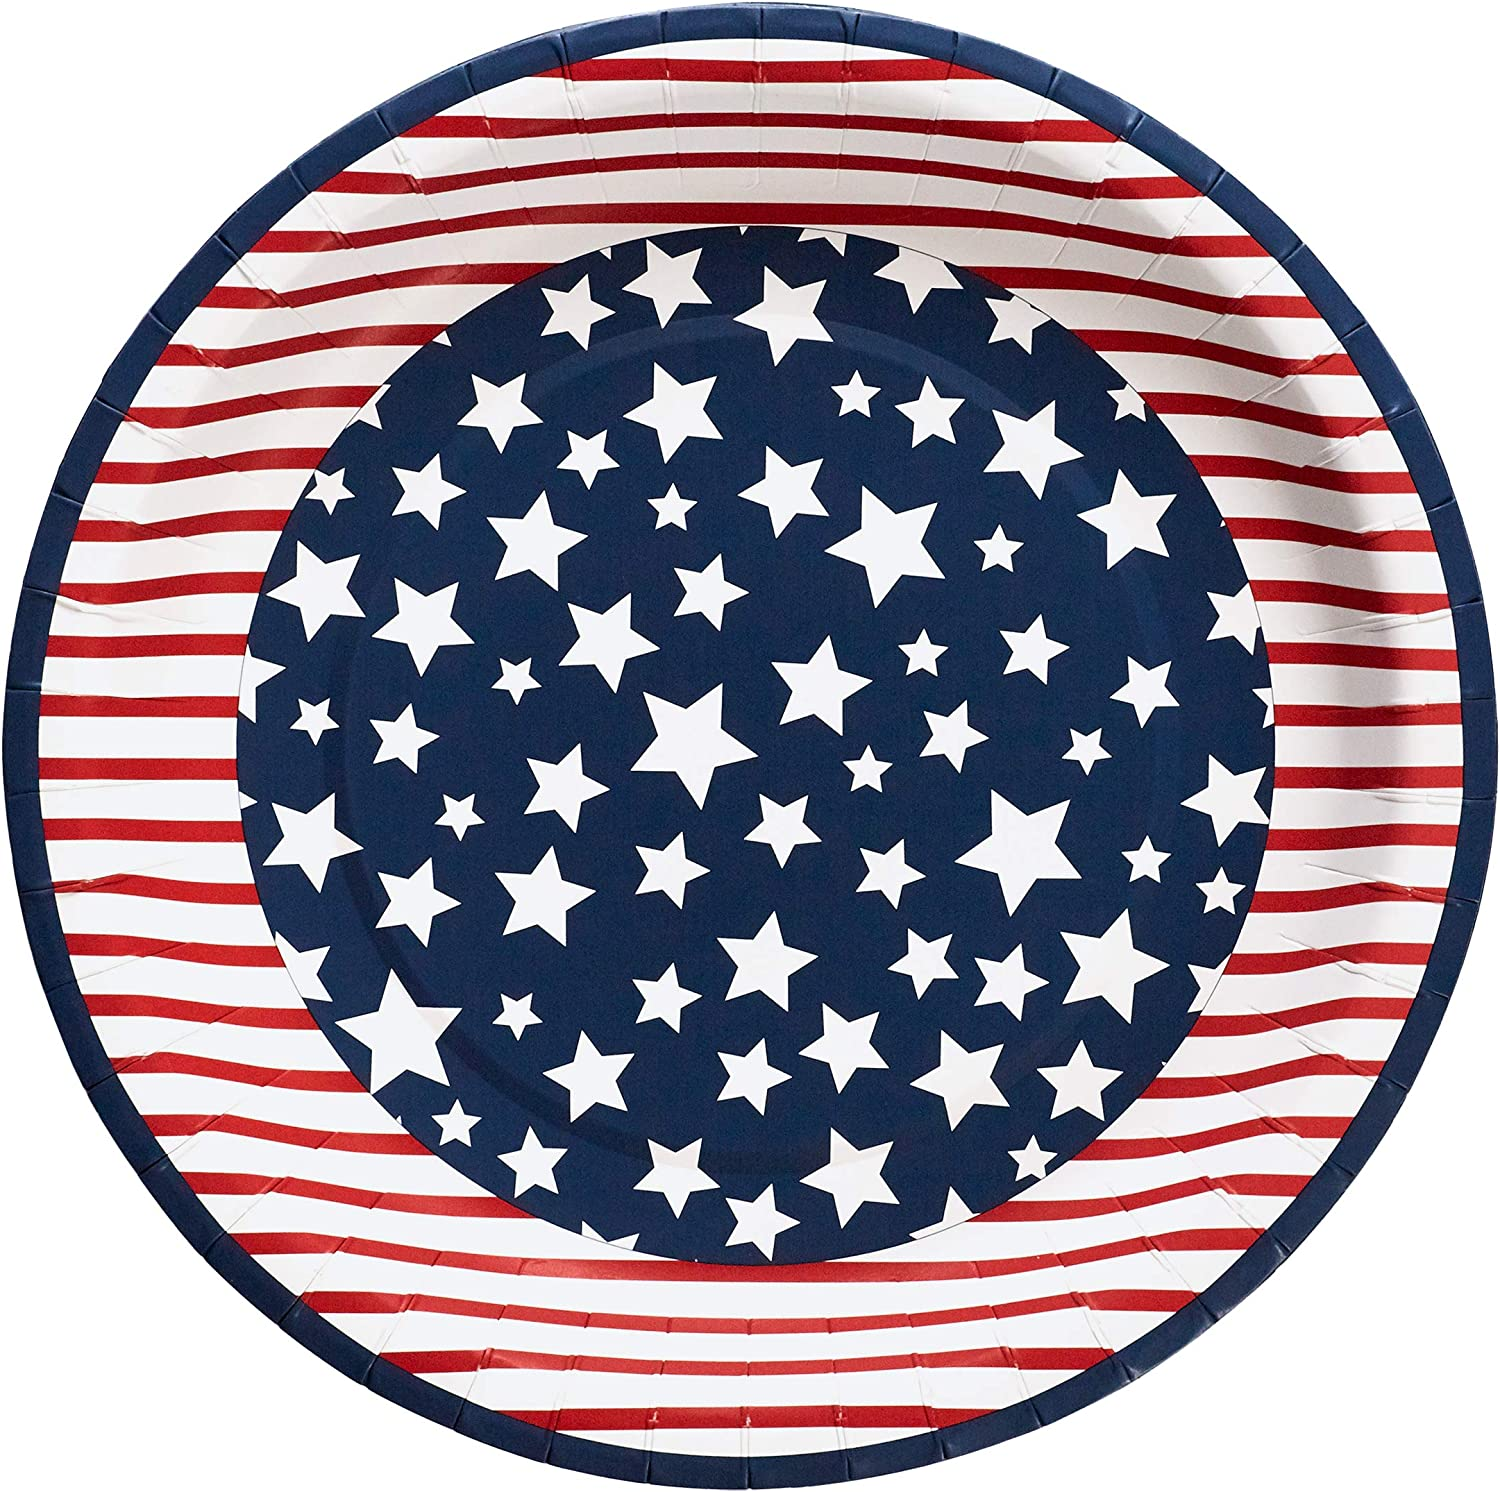 X&O Paper Goods X&O Paper Goods Red, White, and Blue American Flag Disposable Paper Dinner Plates, 8pc, 10.5